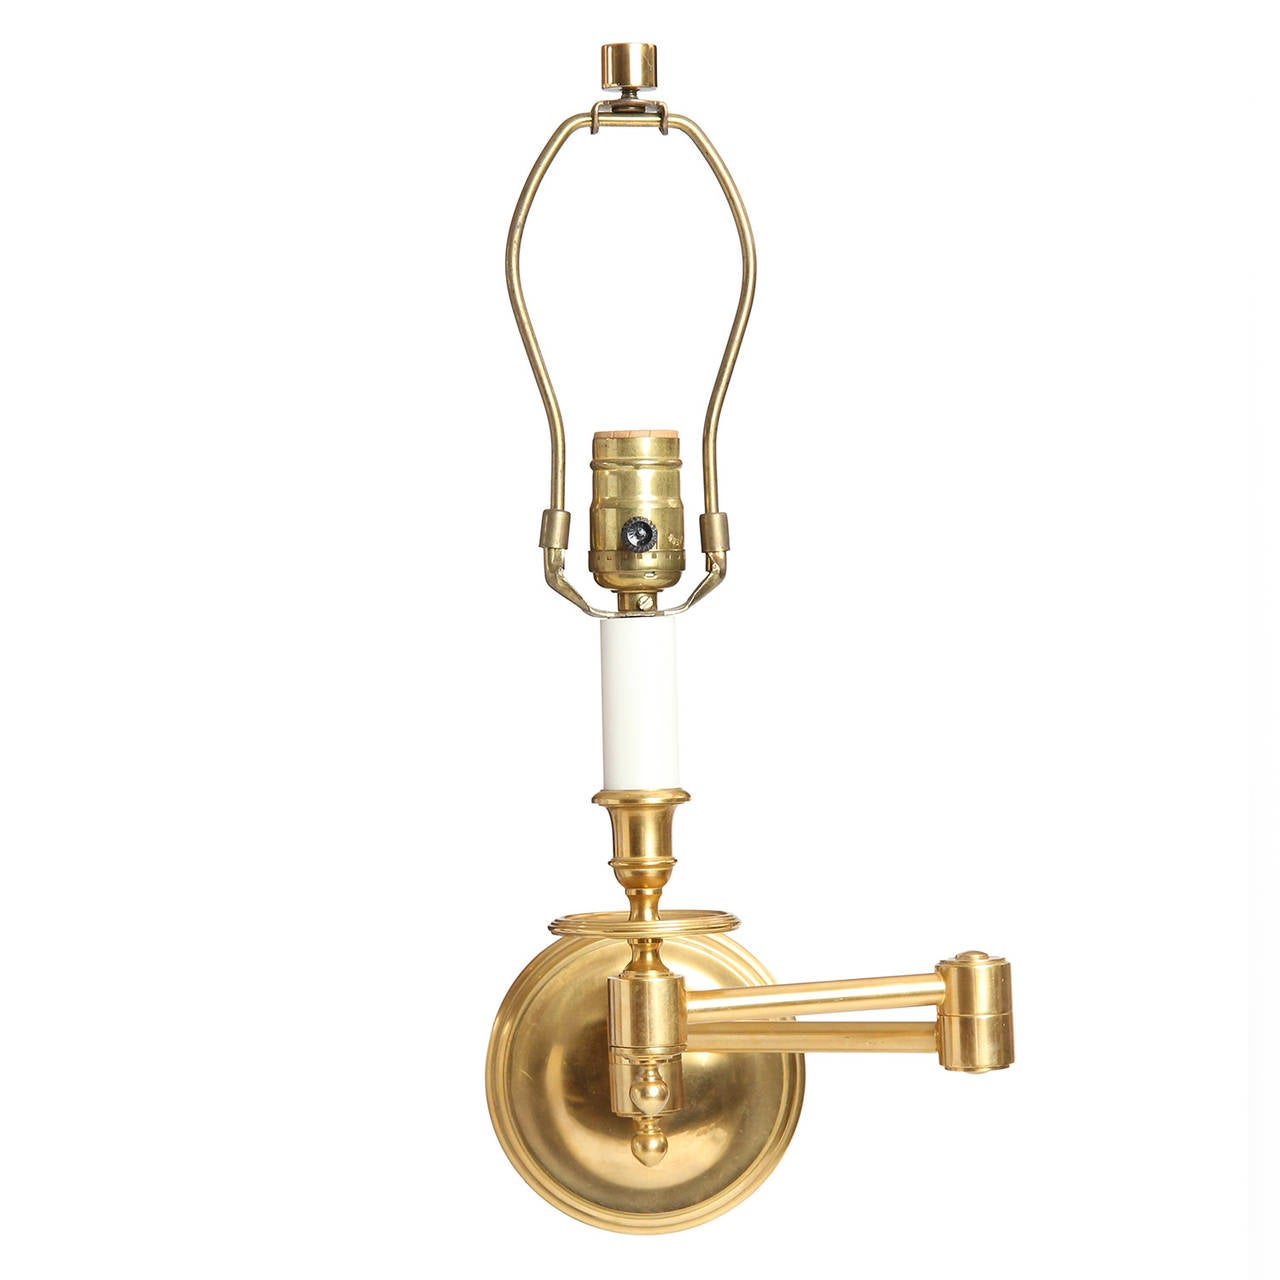 Brass Swing Arm Wall Sconces at 1stdibs